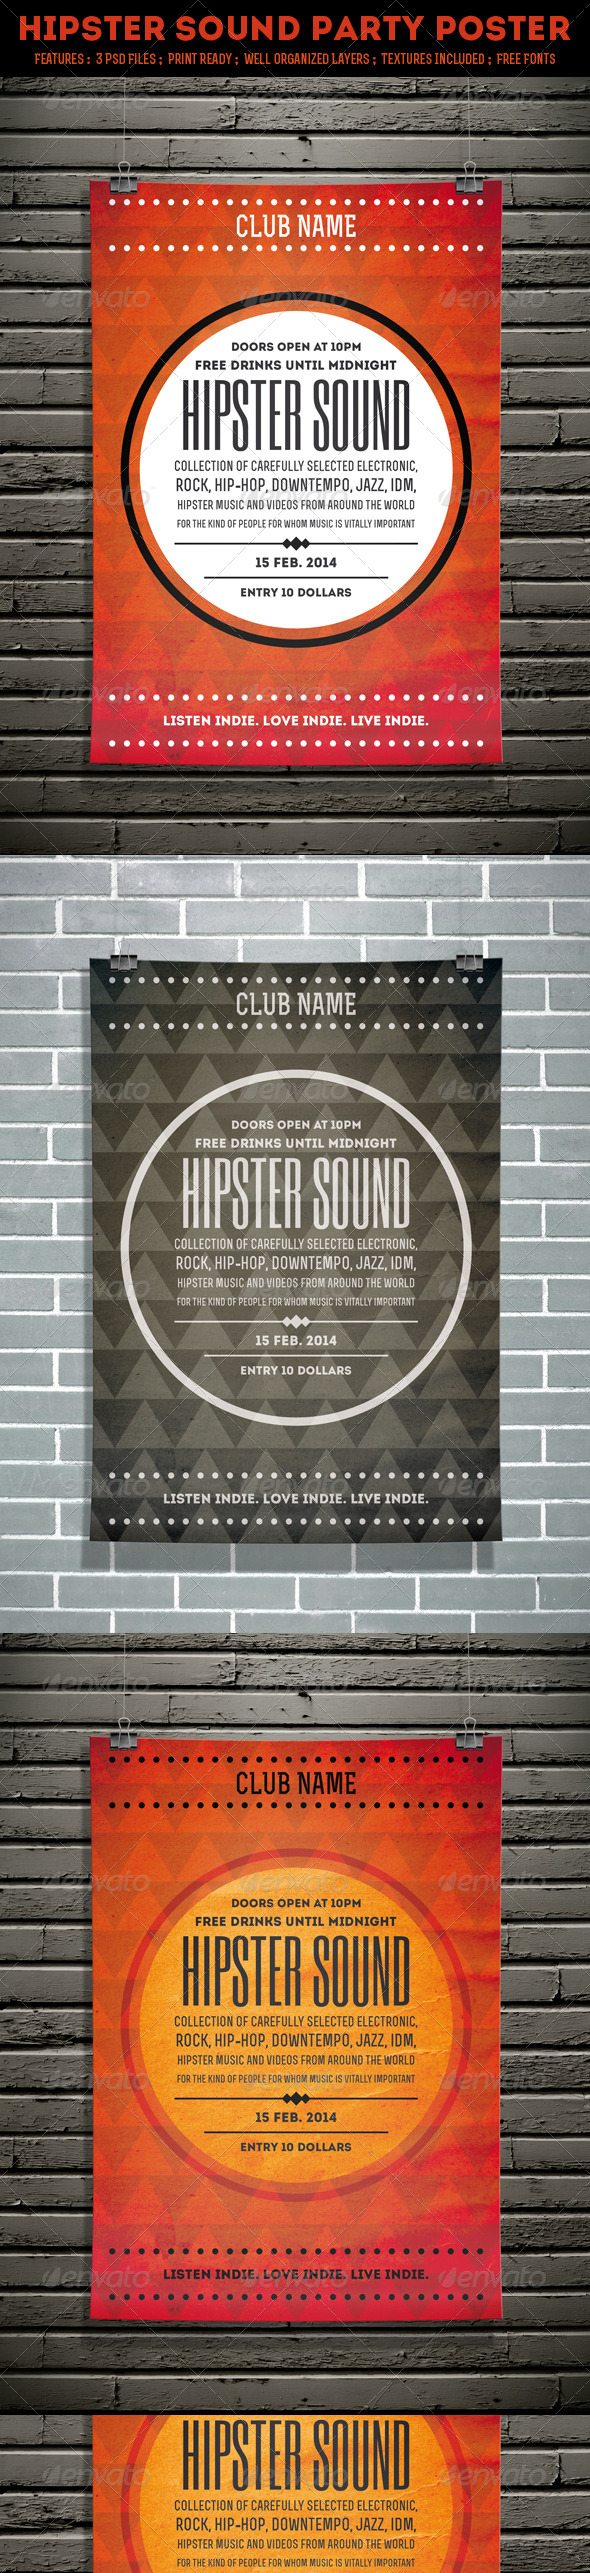 GraphicRiver Hipster Sound Party Poster 6515763